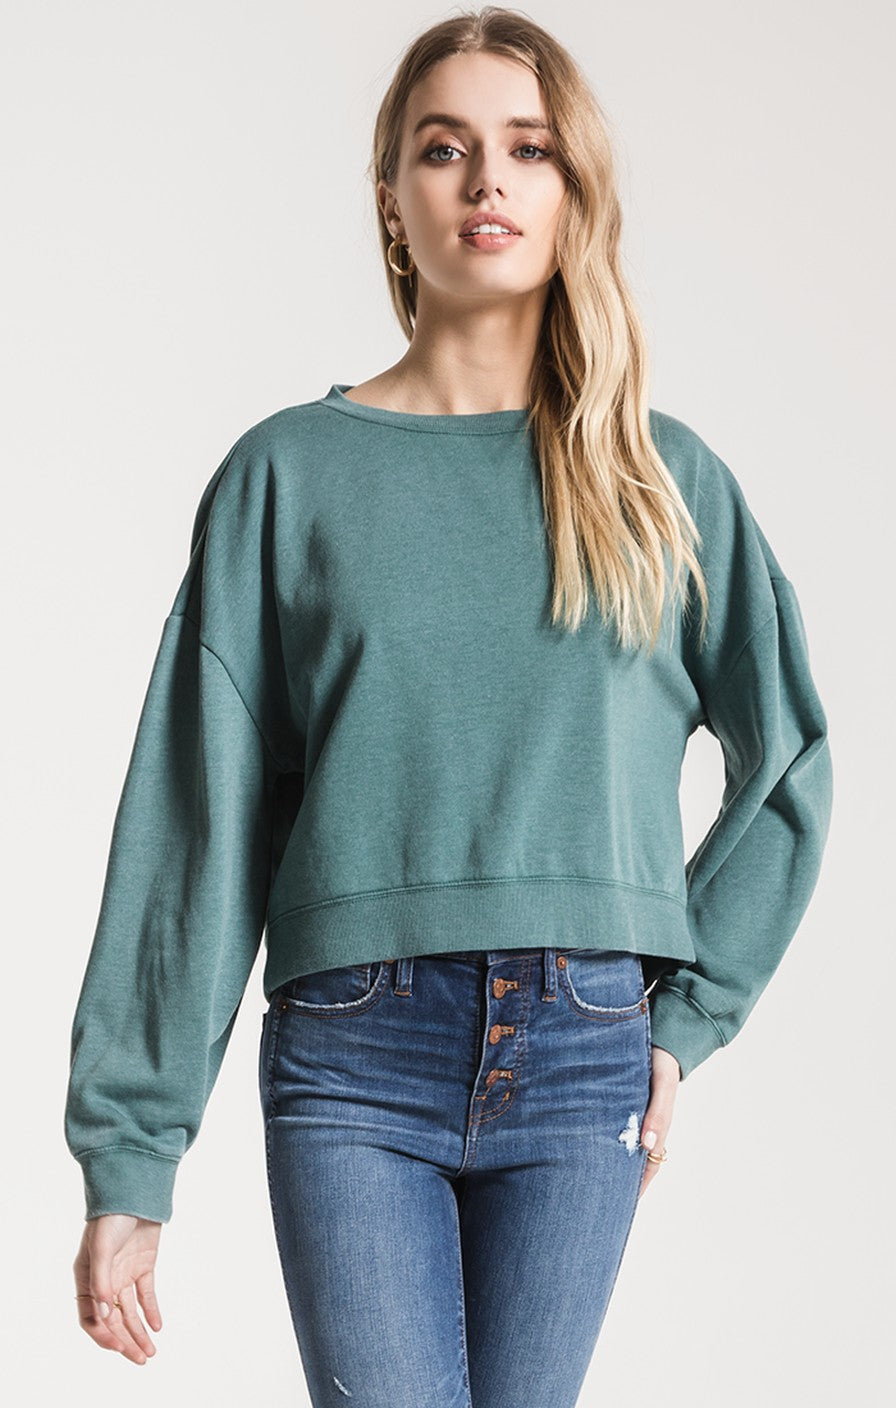 Z Supply The Oversized Fleece Pullover -Pacific Blue